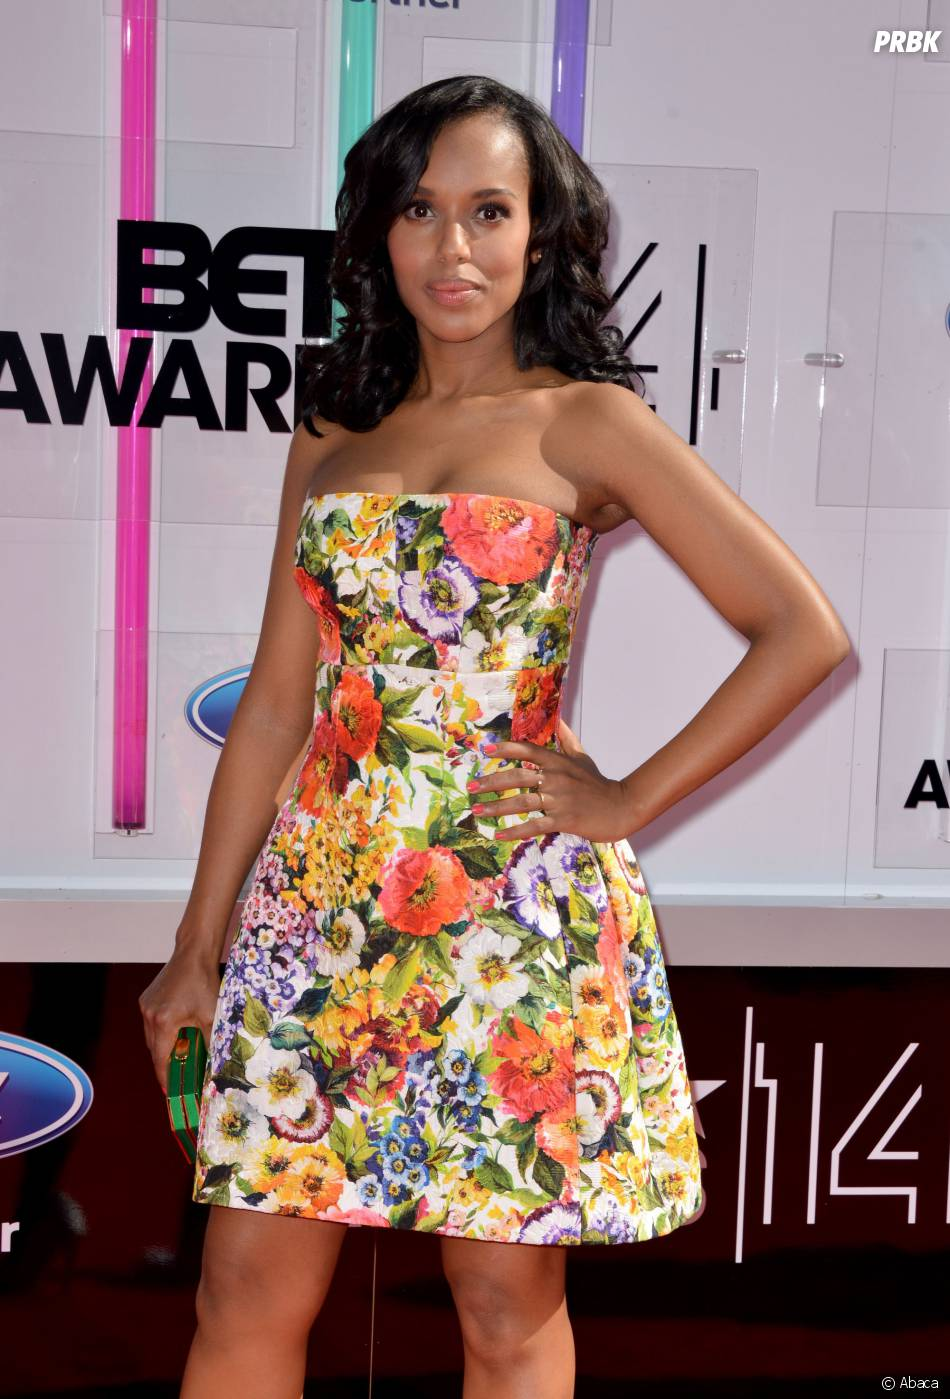 Kerry Washington à la cérémonie des BET Awards 2014 à Los Angeles, le 29 juin 2014